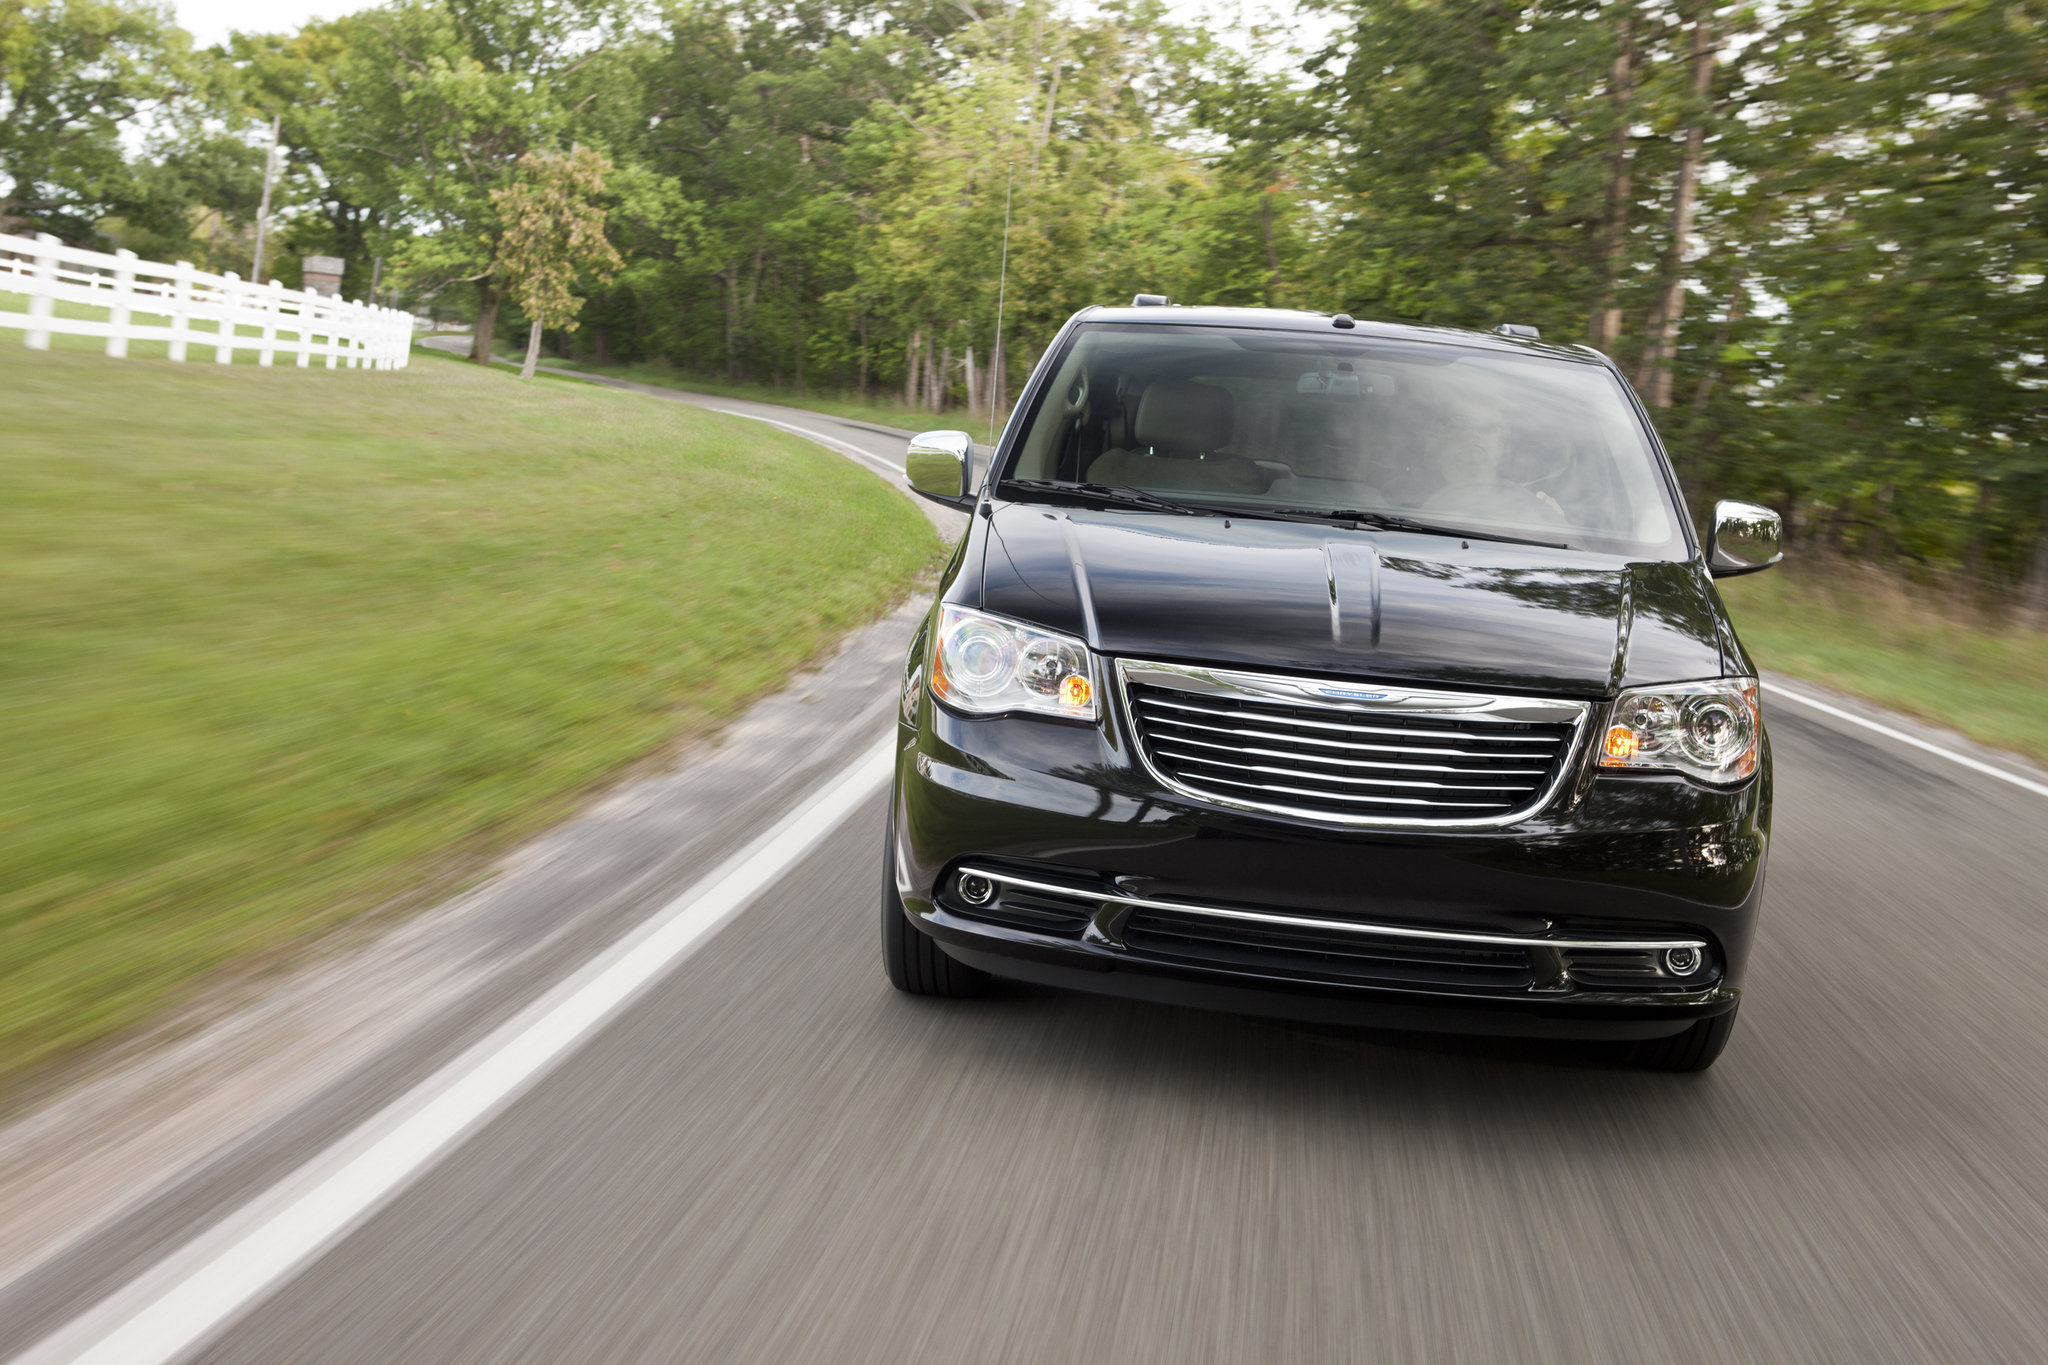 2012-chrysler-town-and-countryjpg-52ce62a05cfef6a9